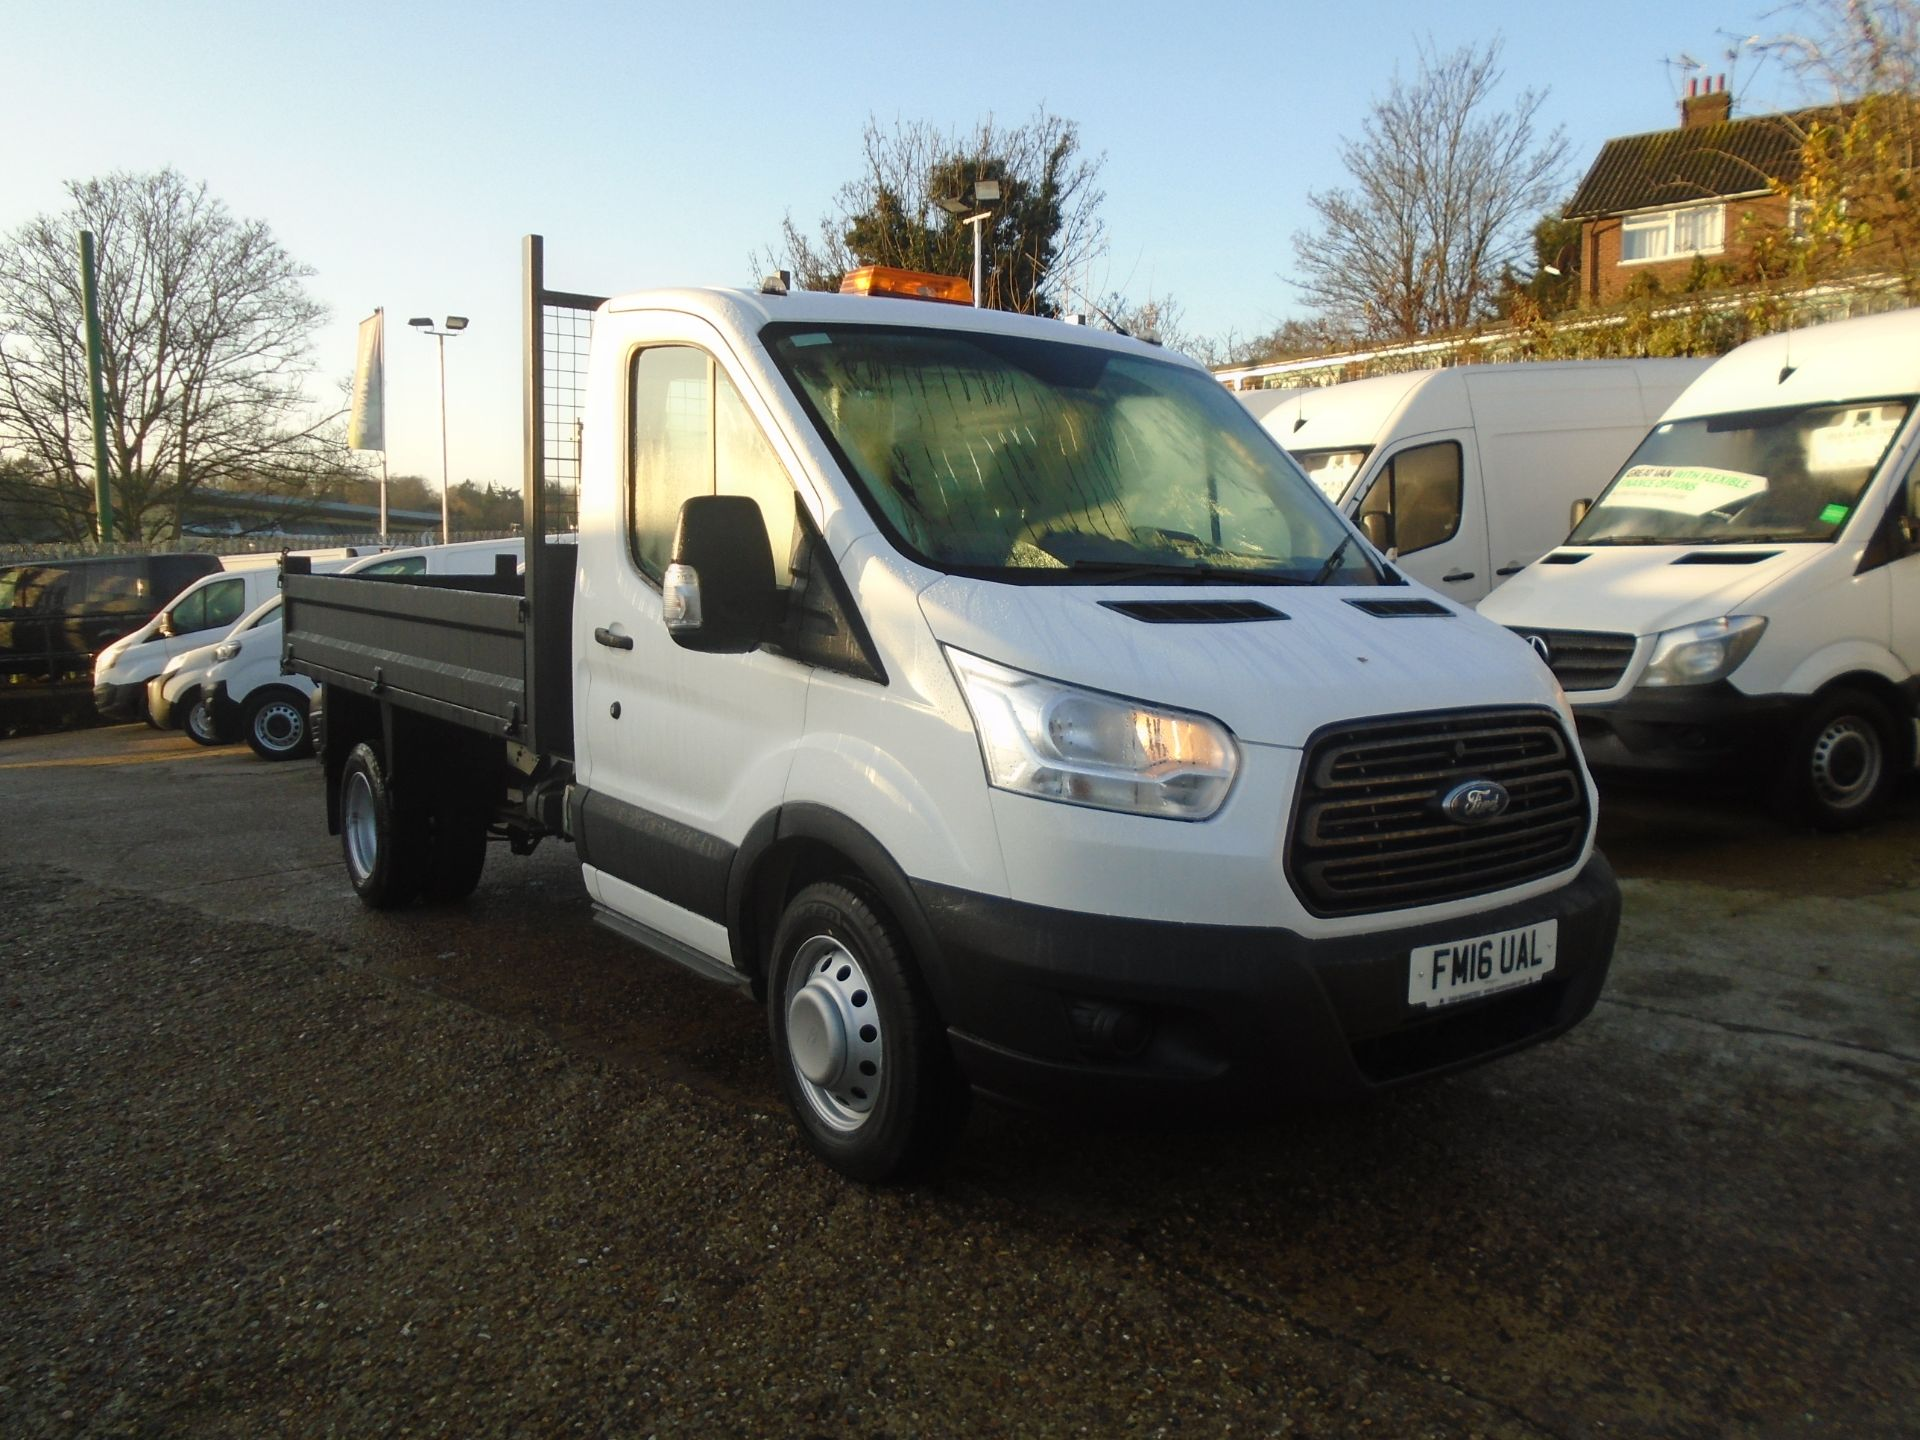 2016 Ford Transit 2.2 Tdci 125Ps Tipper (FM16UAL)